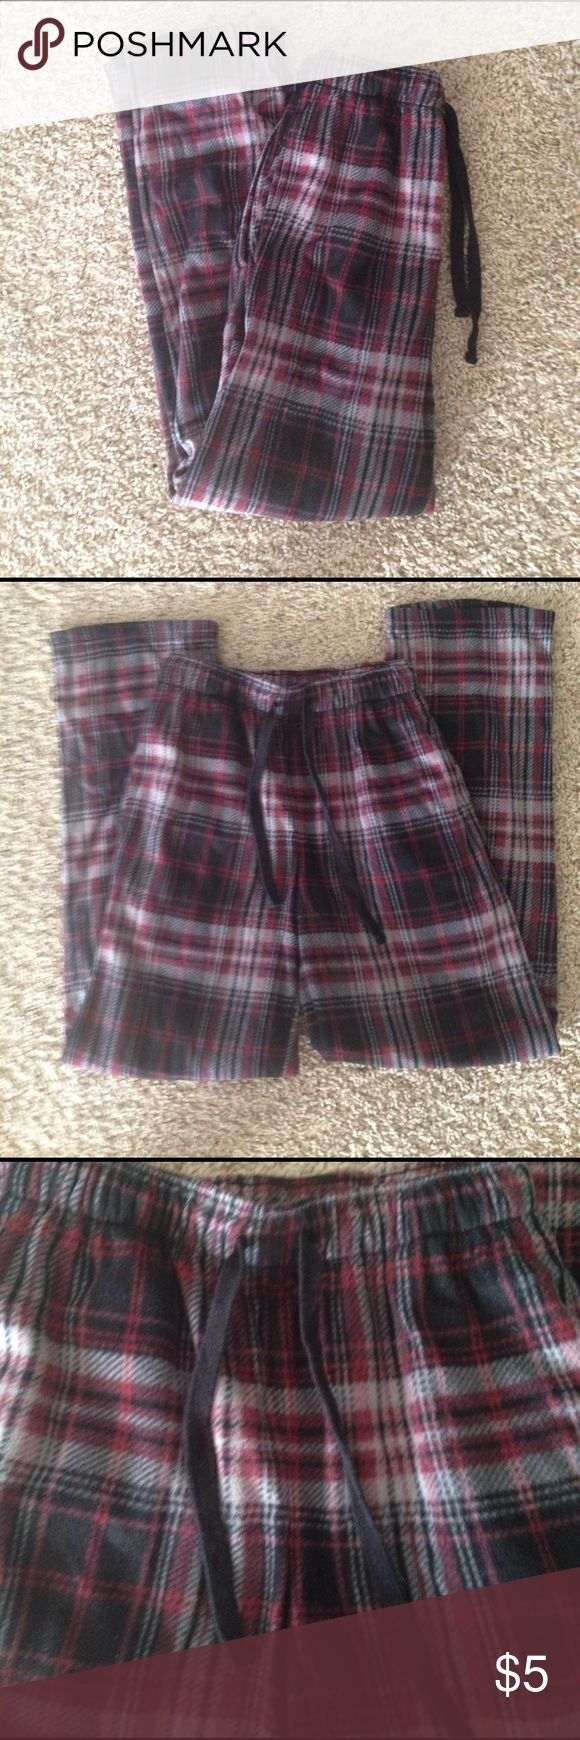 "Mens Pajama Pants Joe Boxer red, black, & gray plaid mens pajama pants, size small. Like new condition. Fit is tight for a small, these were too small for my hubby and he is a 30"" waist. Joe Boxer Pants"